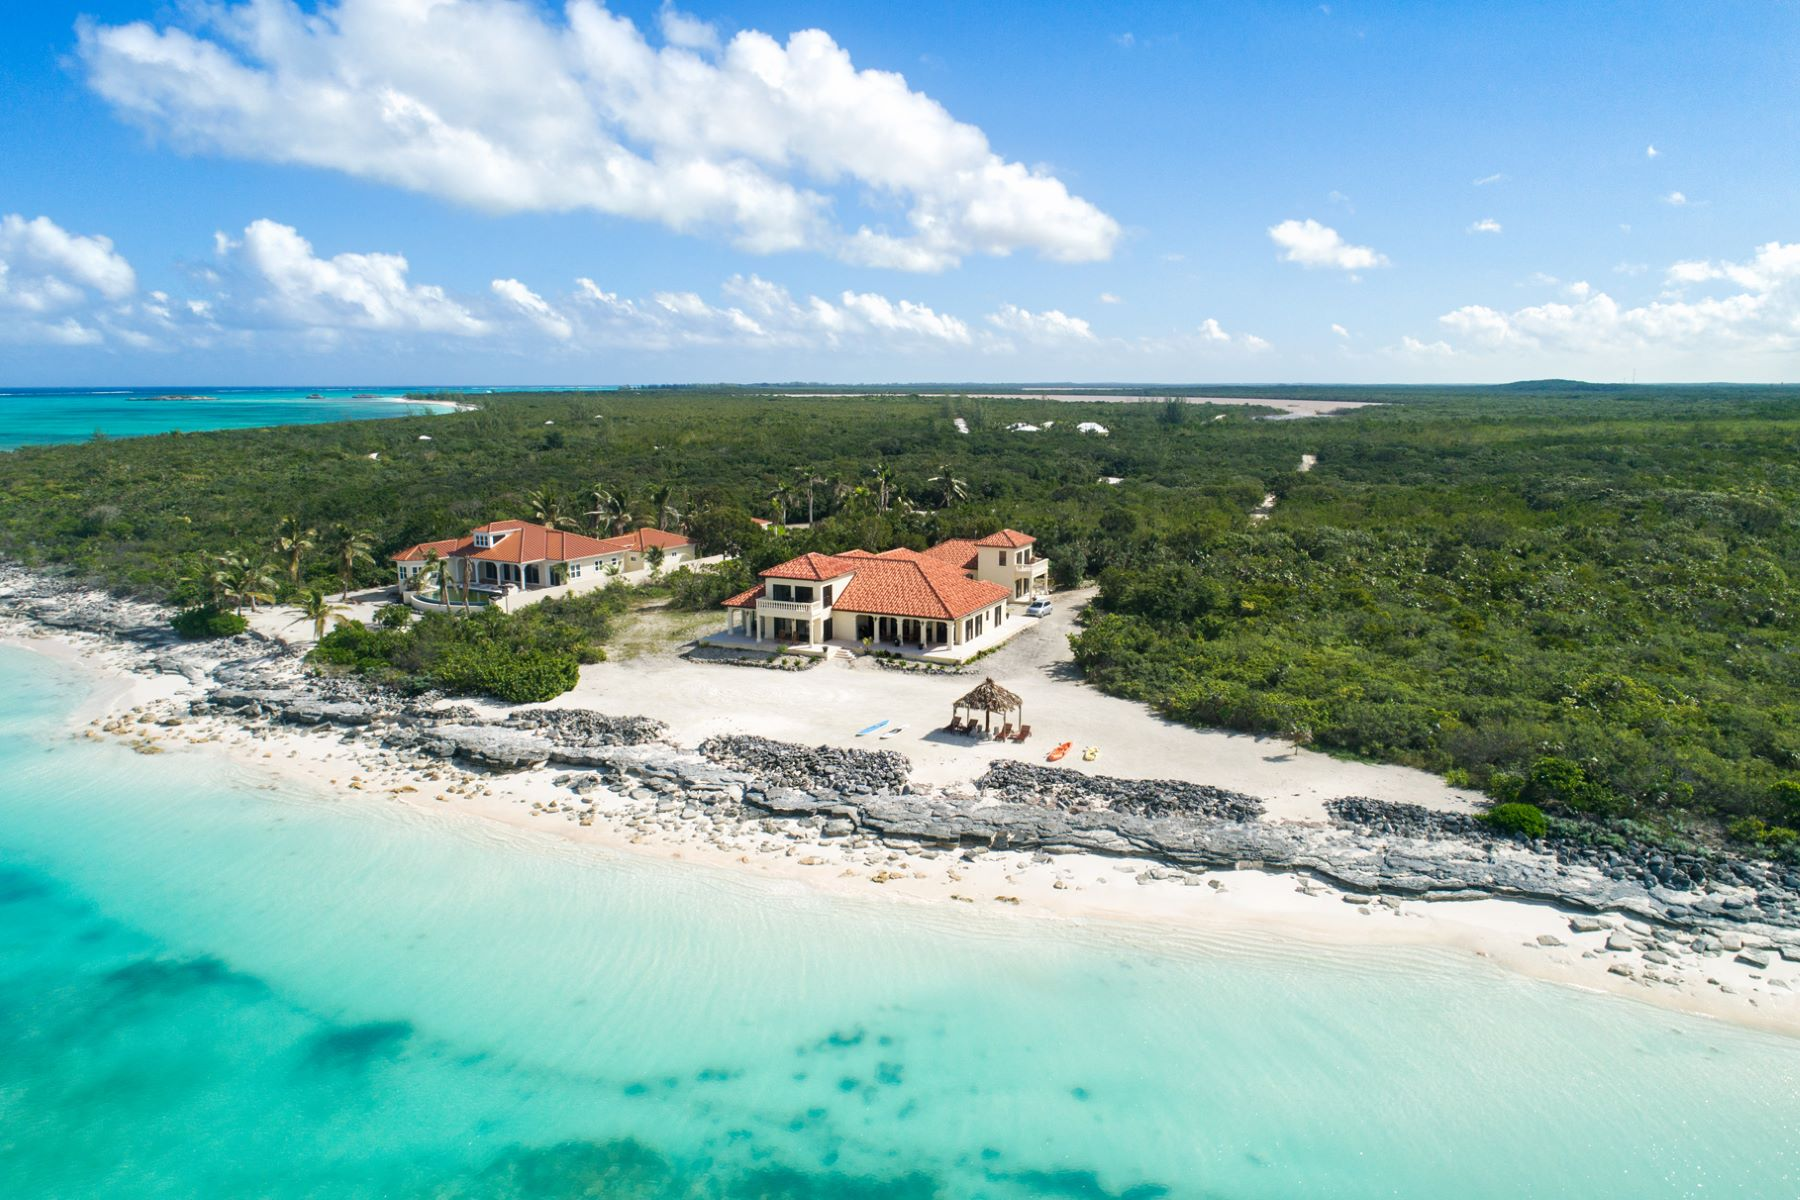 Single Family Home for Sale at Jodo Villa Sandy Point, North Caicos Turks And Caicos Islands